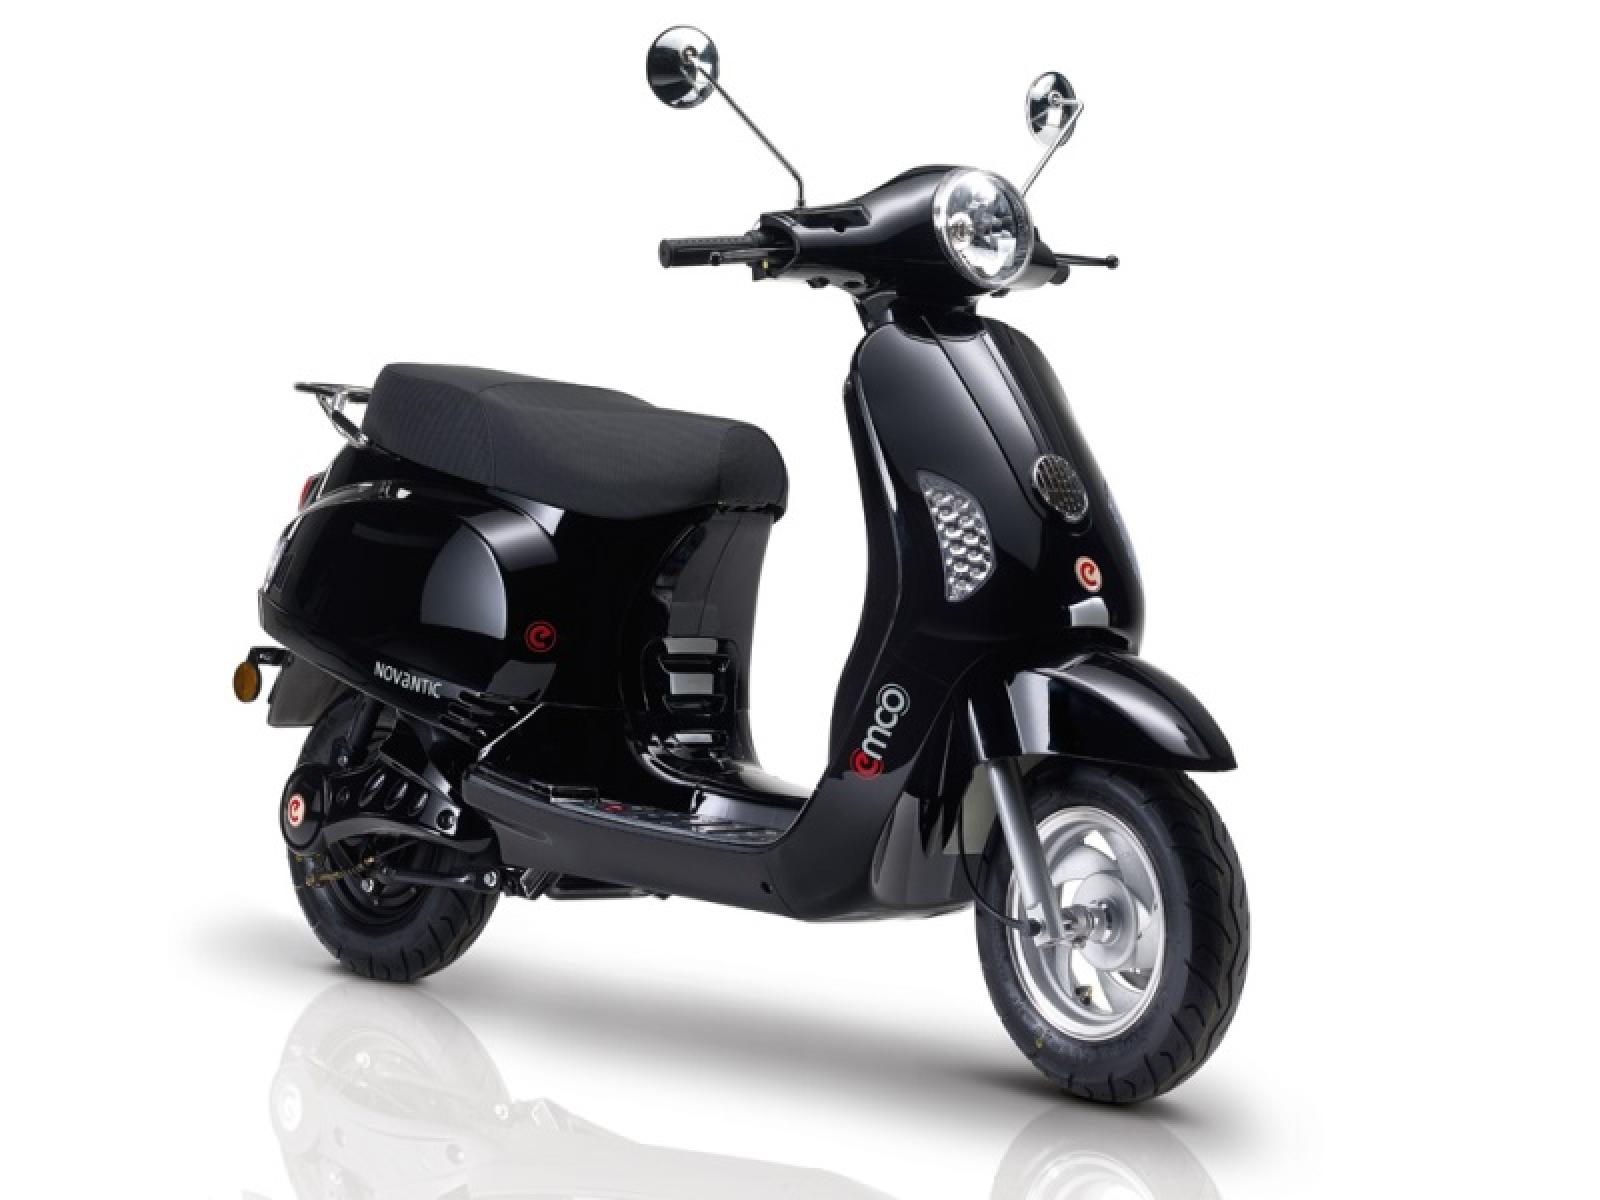 emco novantic c 2000 1 x 28 ah elektrische scooters 2018. Black Bedroom Furniture Sets. Home Design Ideas